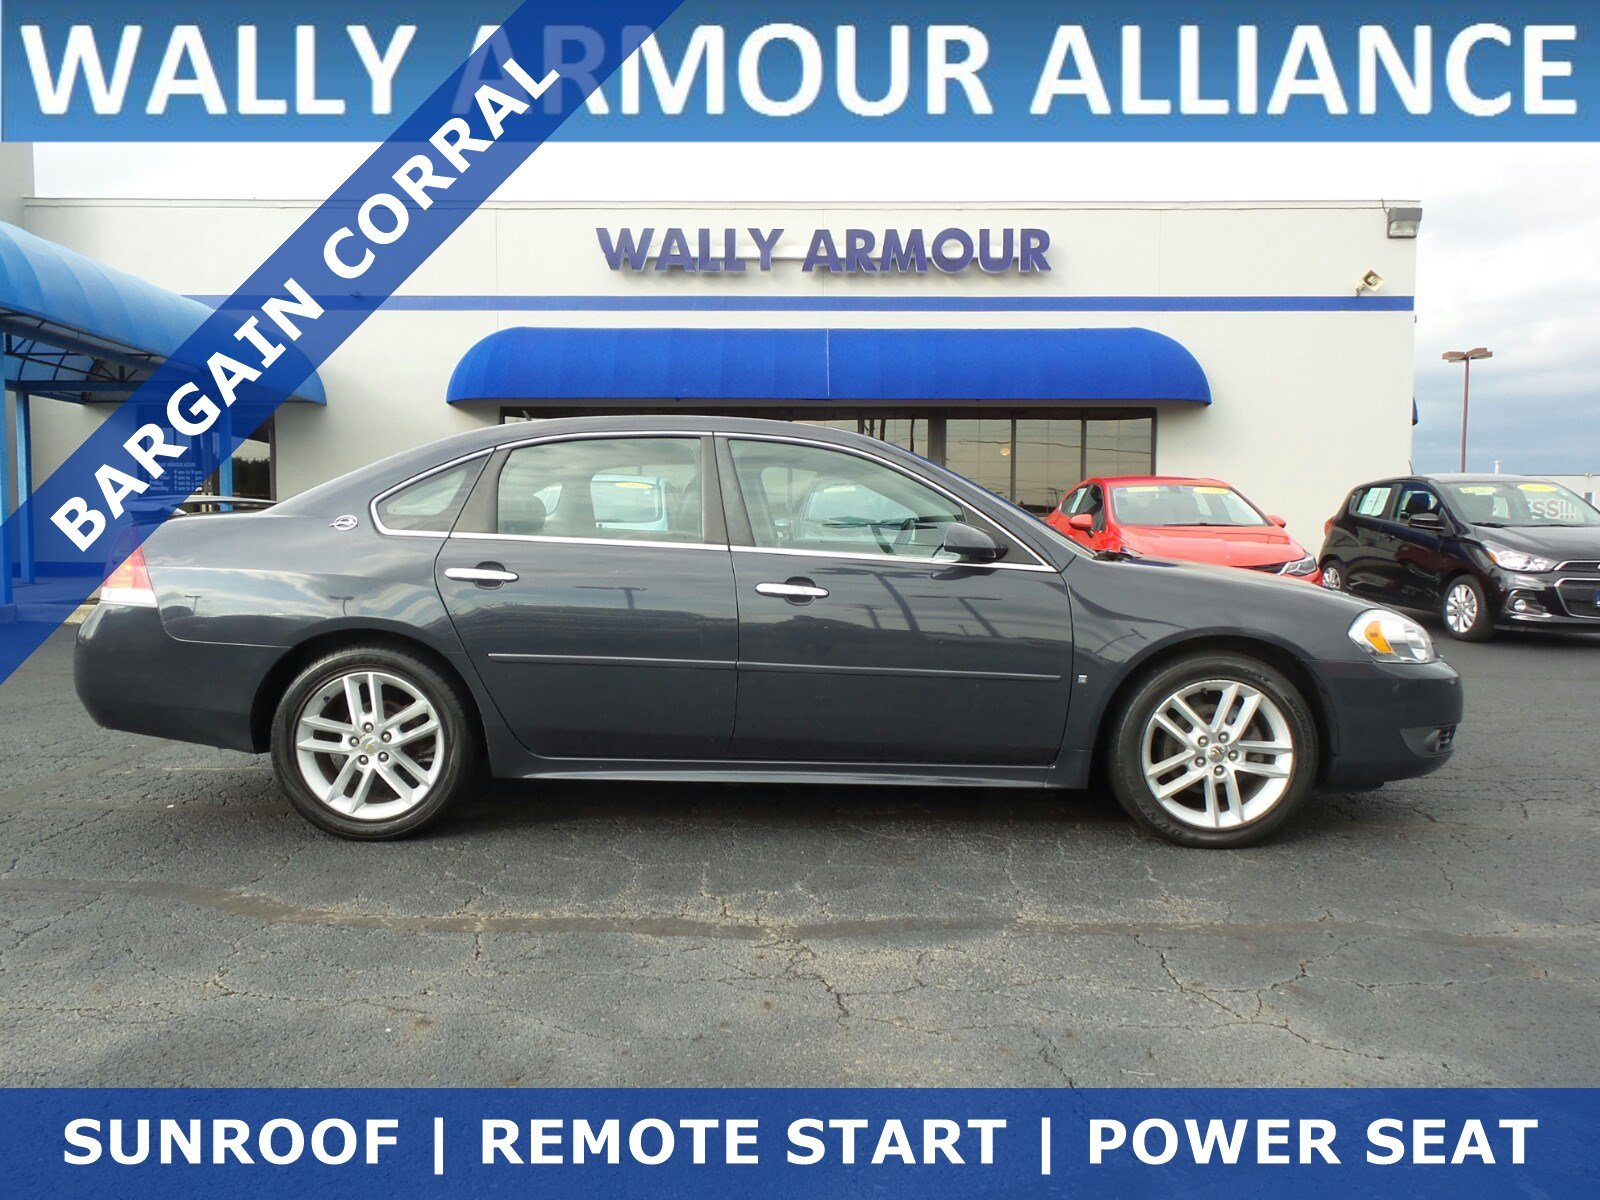 Pre Owned 2009 Chevrolet Impala LTZ 4dr Car in Alliance RR1223A